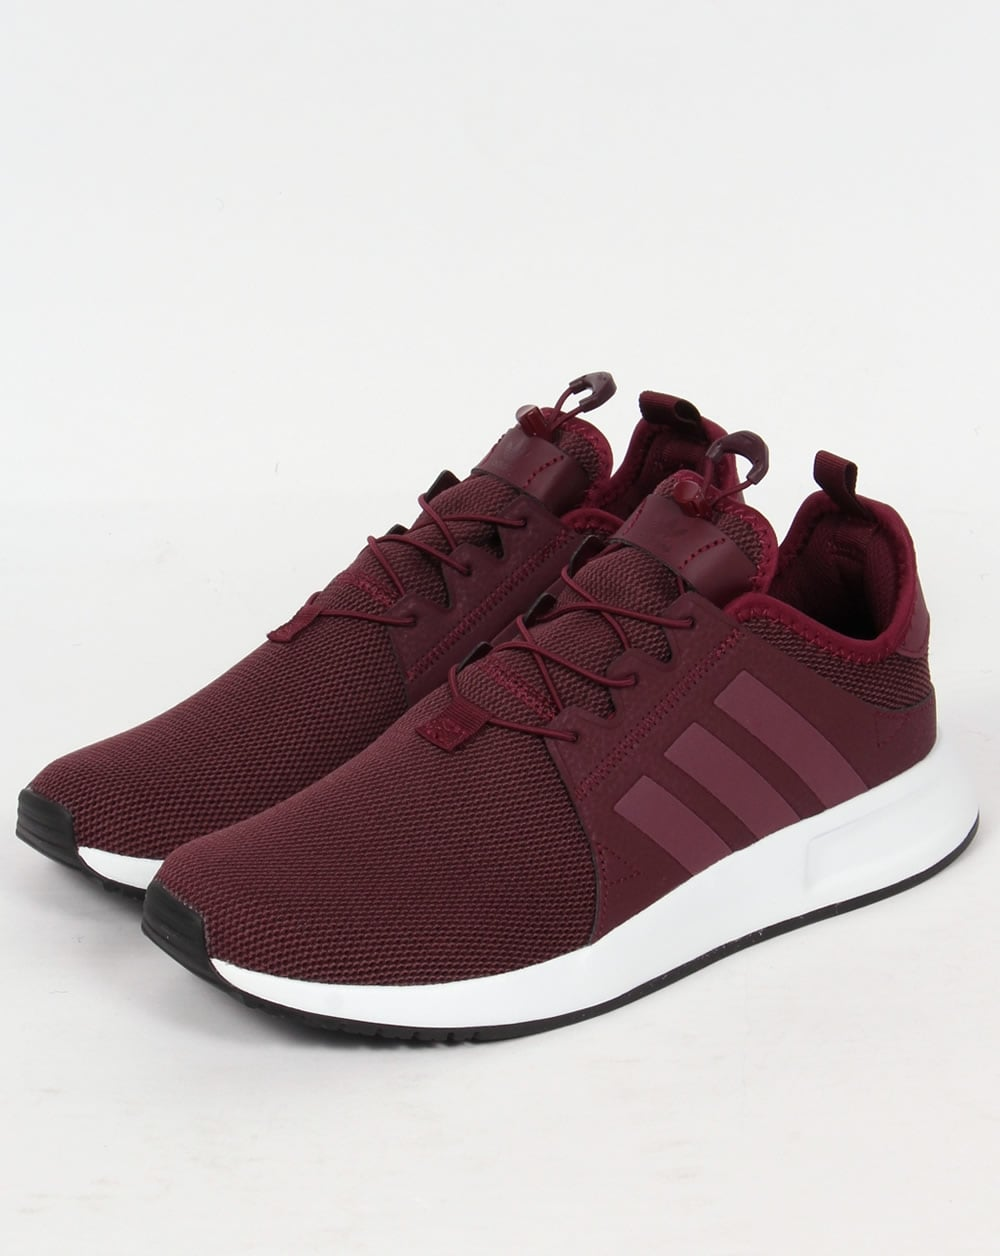 Shoes Sale: Save Up to 80% Off! Shop bizmarketing.ml's huge selection of Shoes - Over 31, styles available. FREE Shipping & Exchanges, and a % price guarantee!